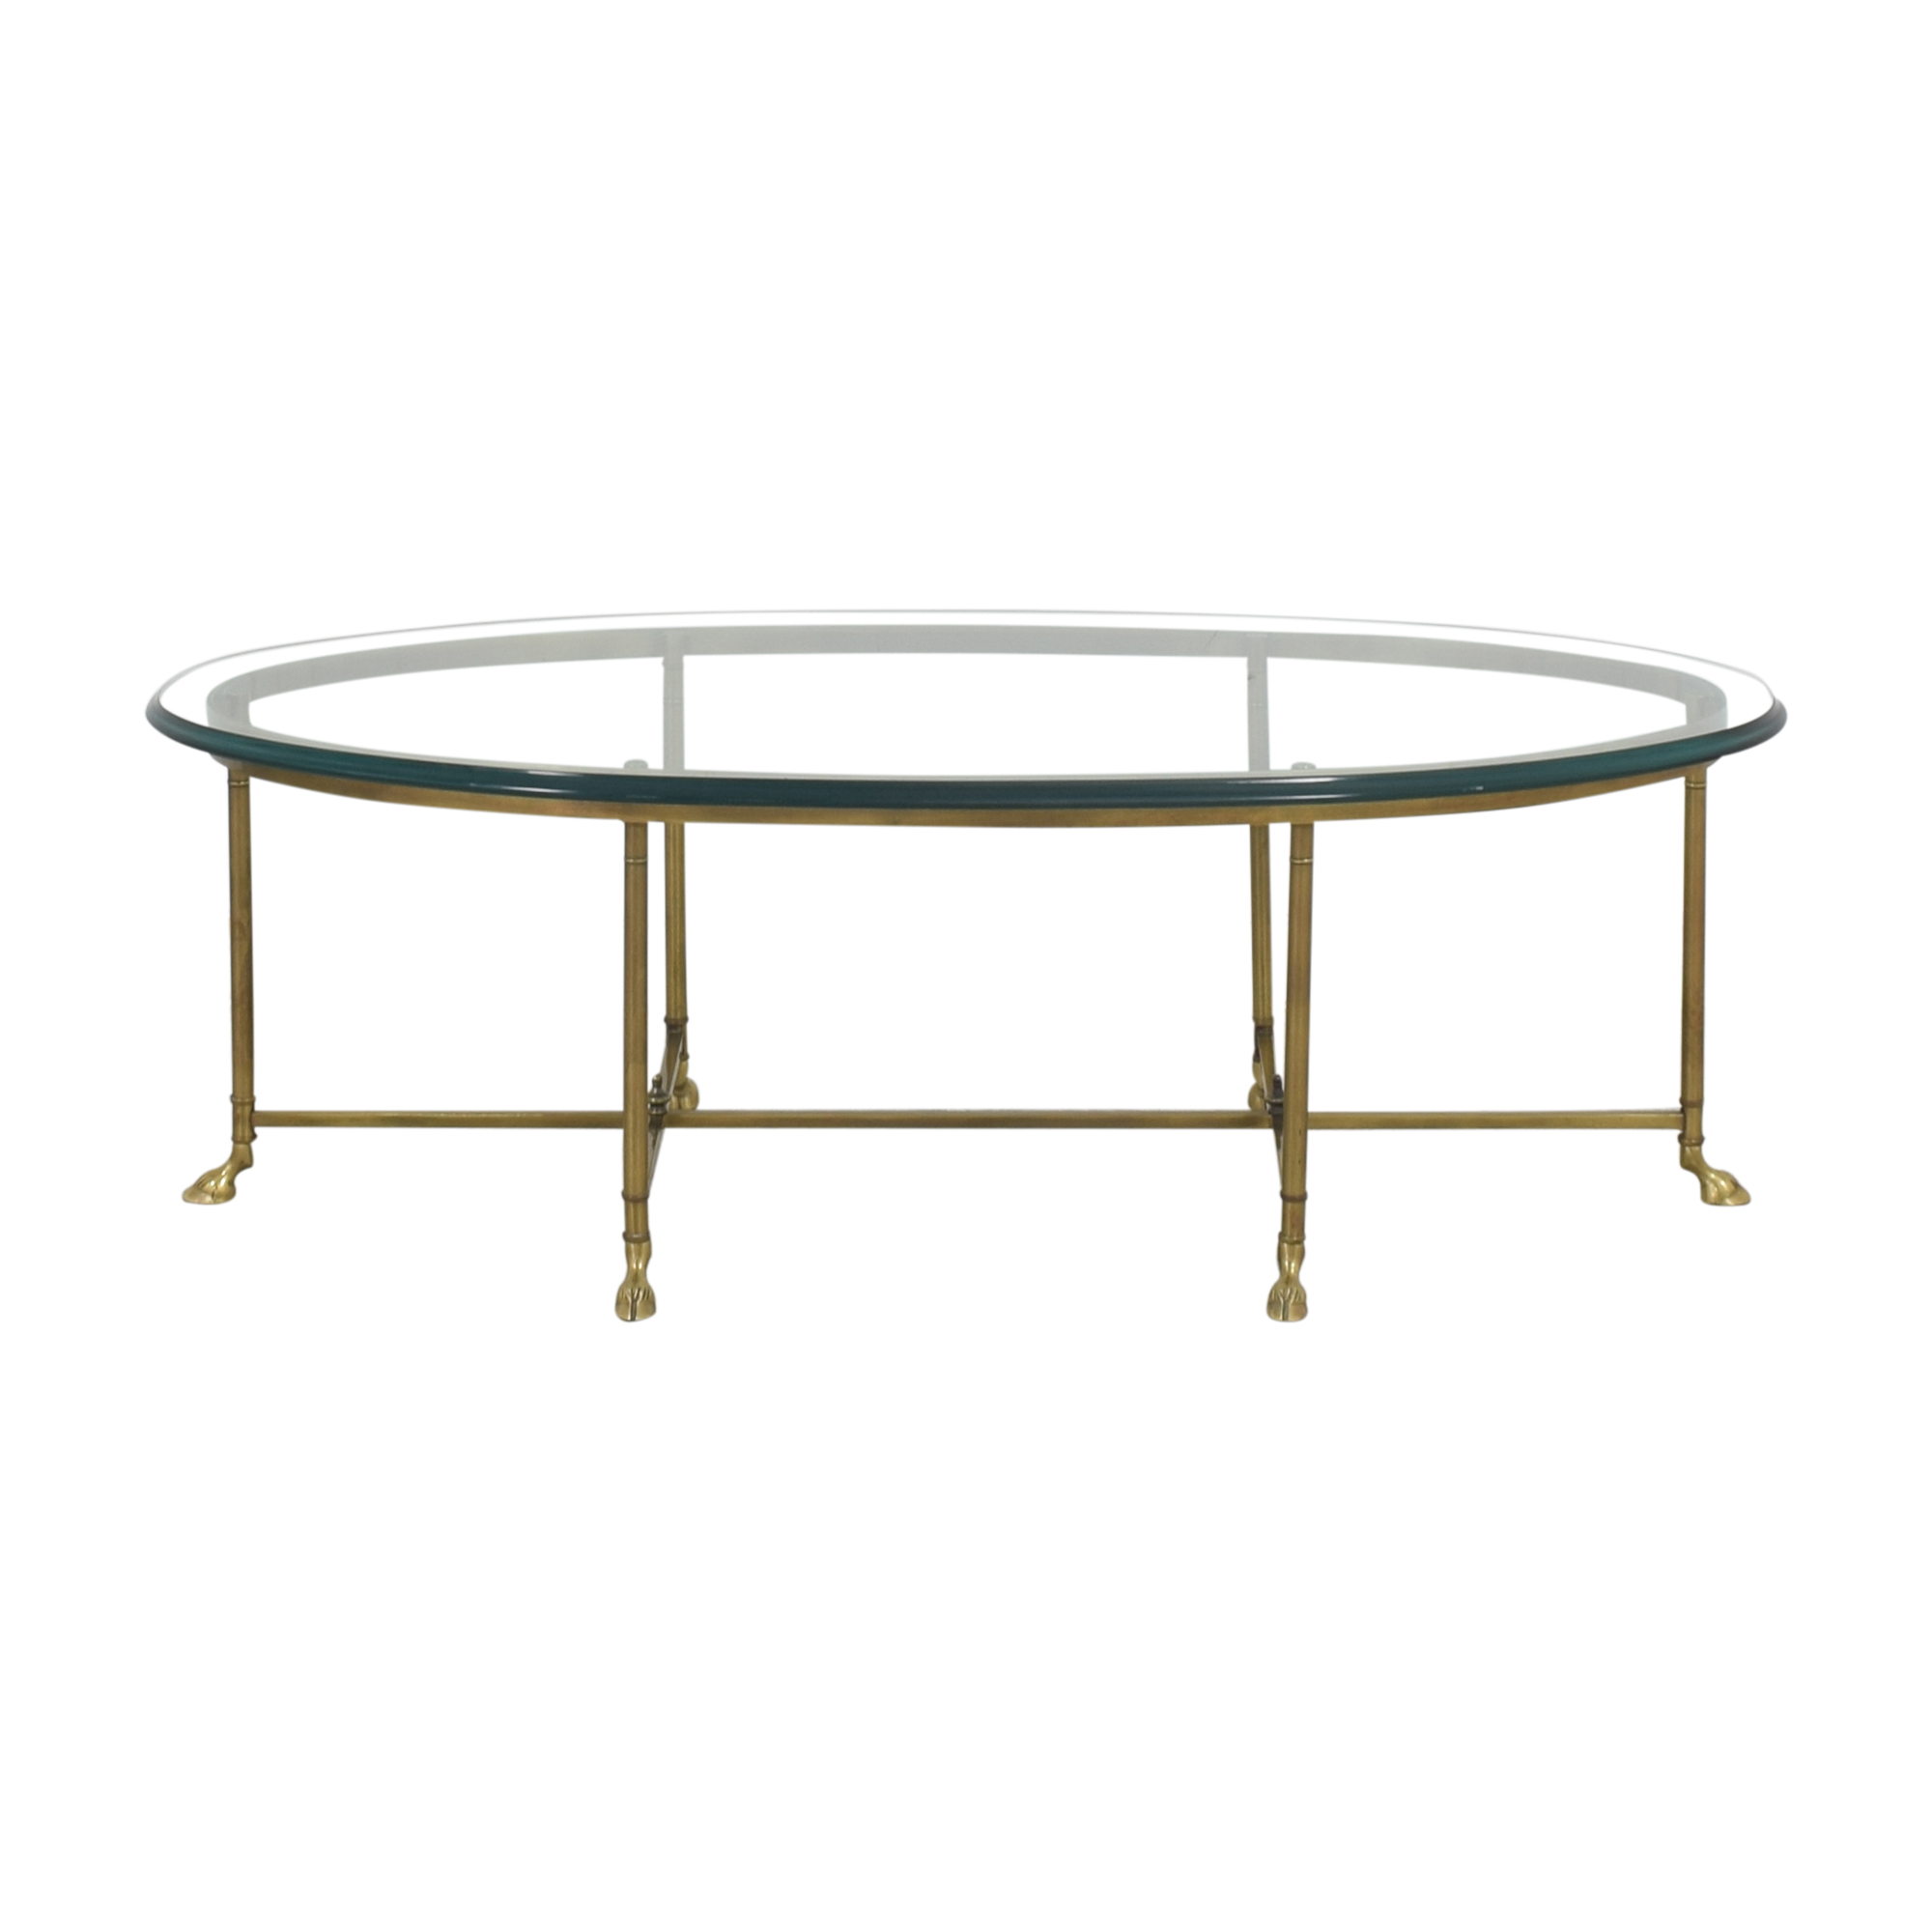 Stickley Furniture Stickley Furniture Oval Cocktail Table on sale